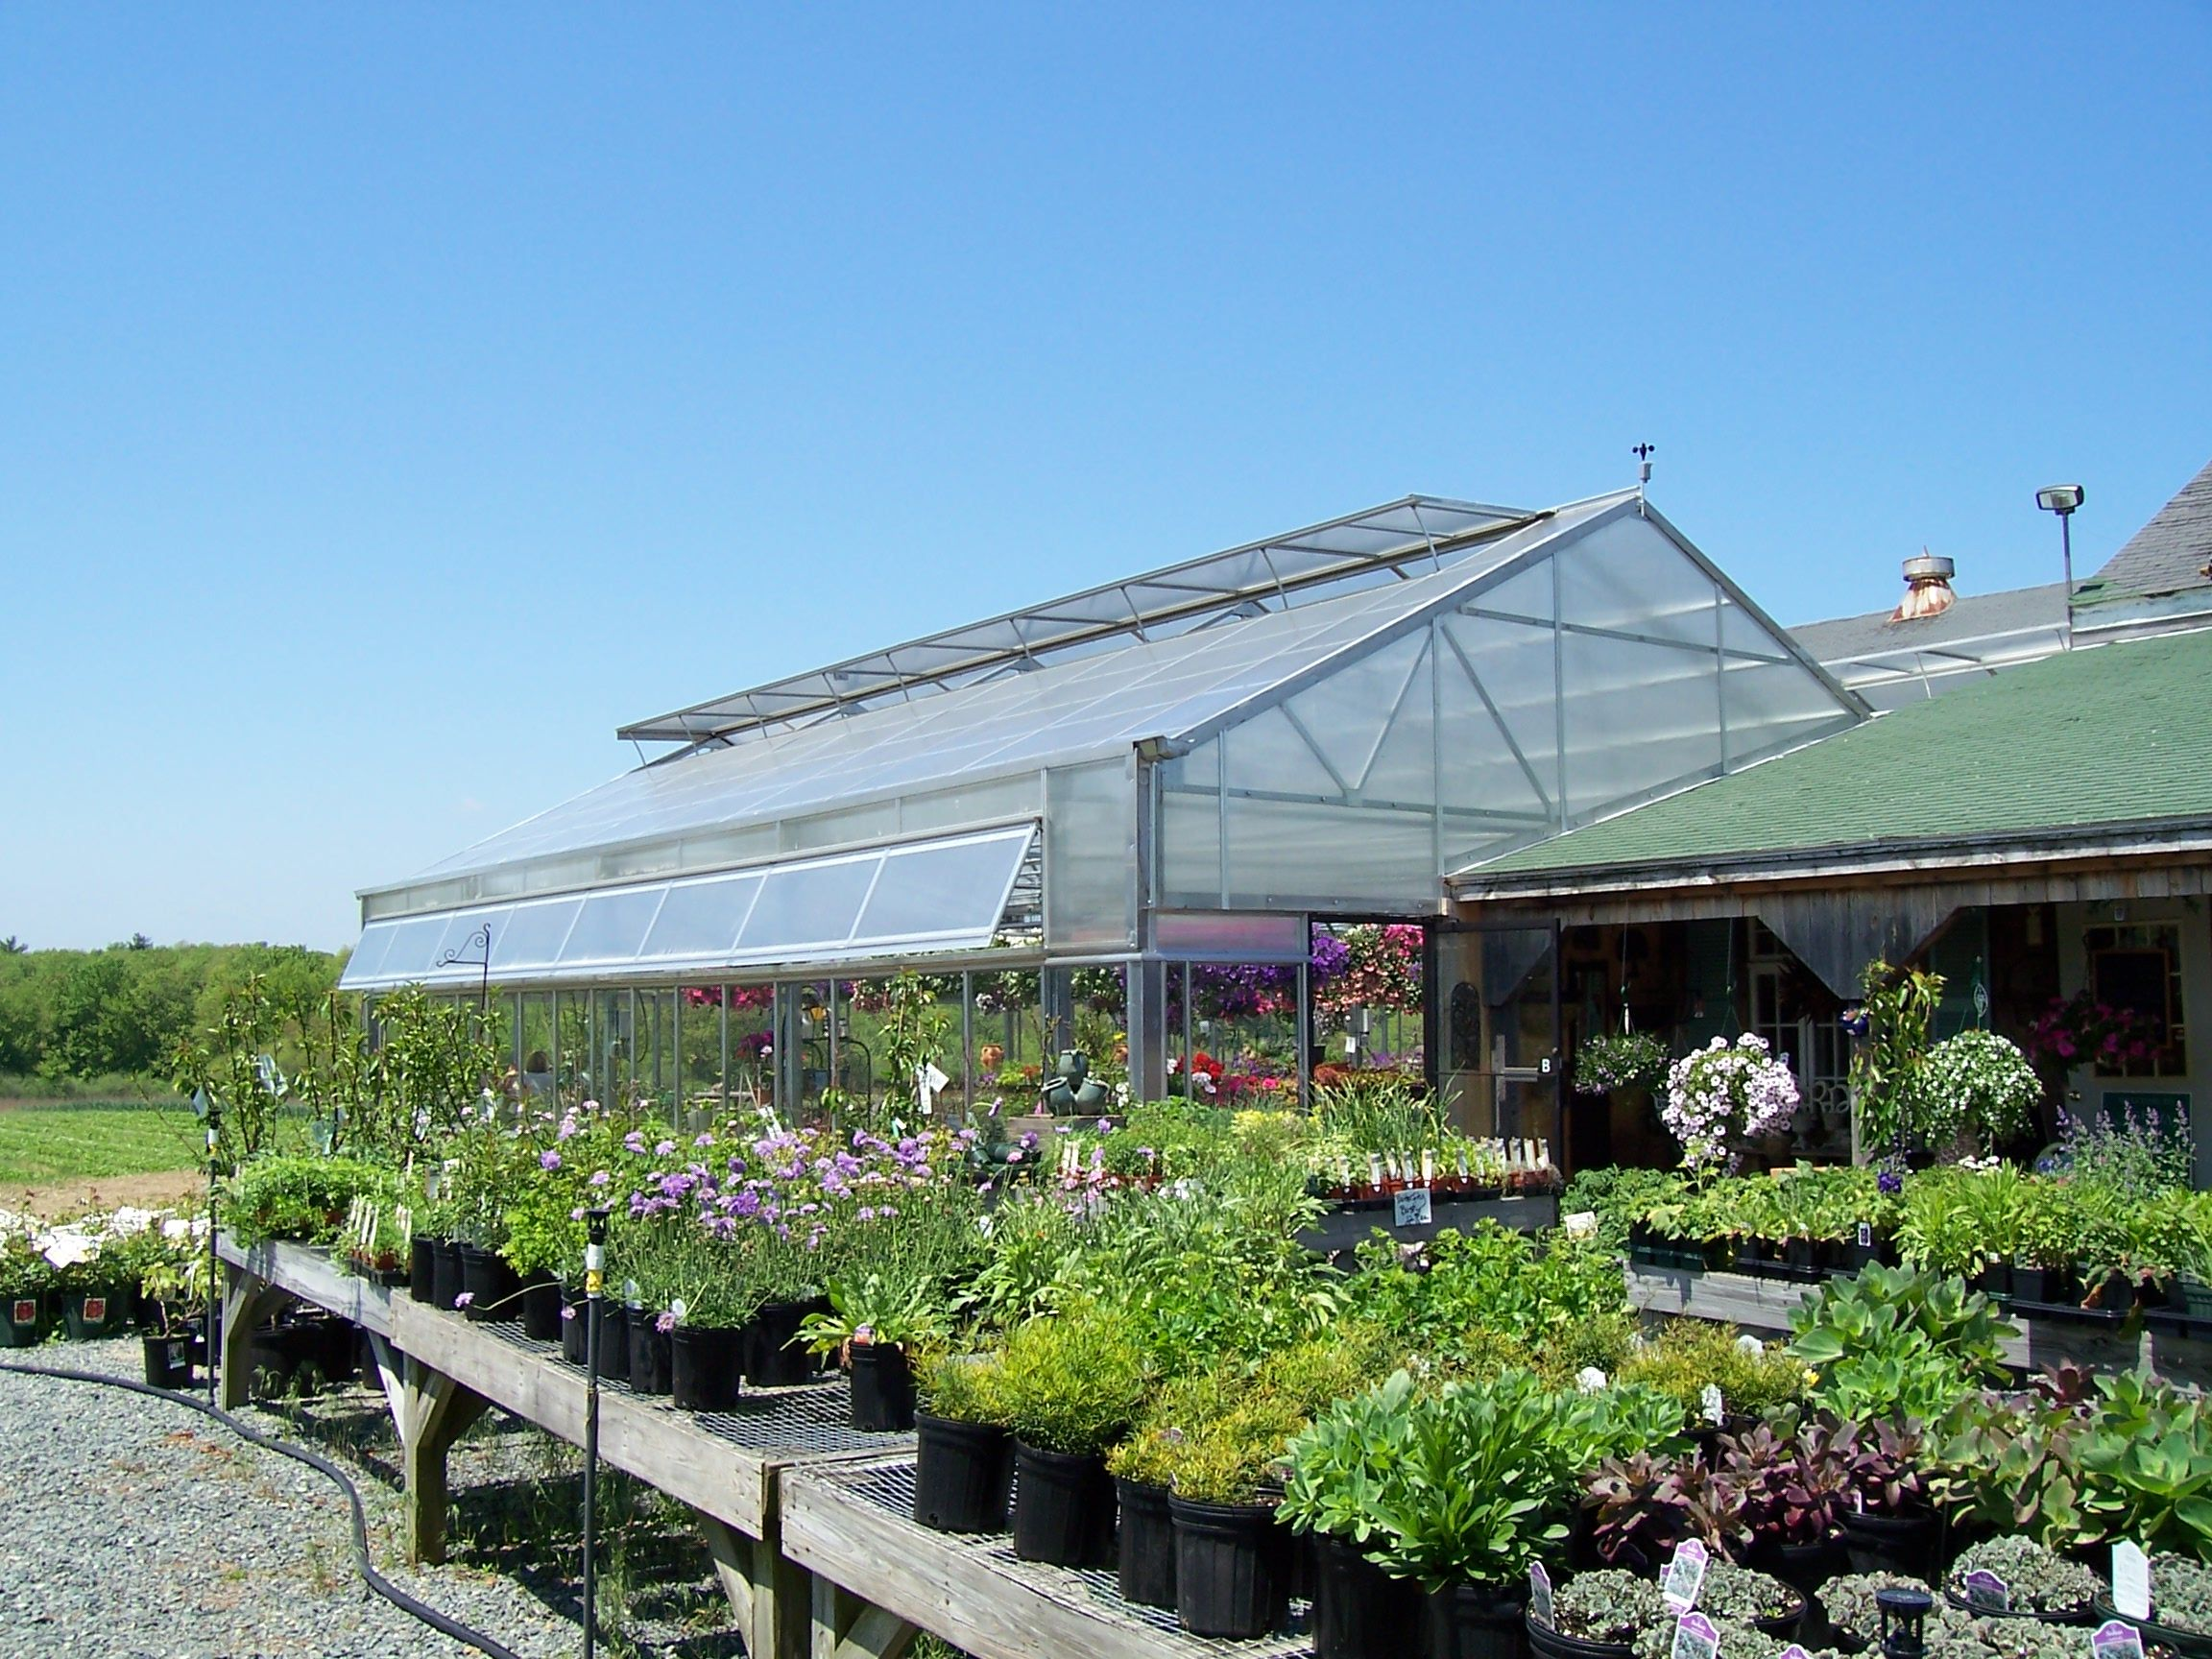 set your sights on serious growth this spring with a rimol greenhouse system - Rimol Greenhouse Of Photos